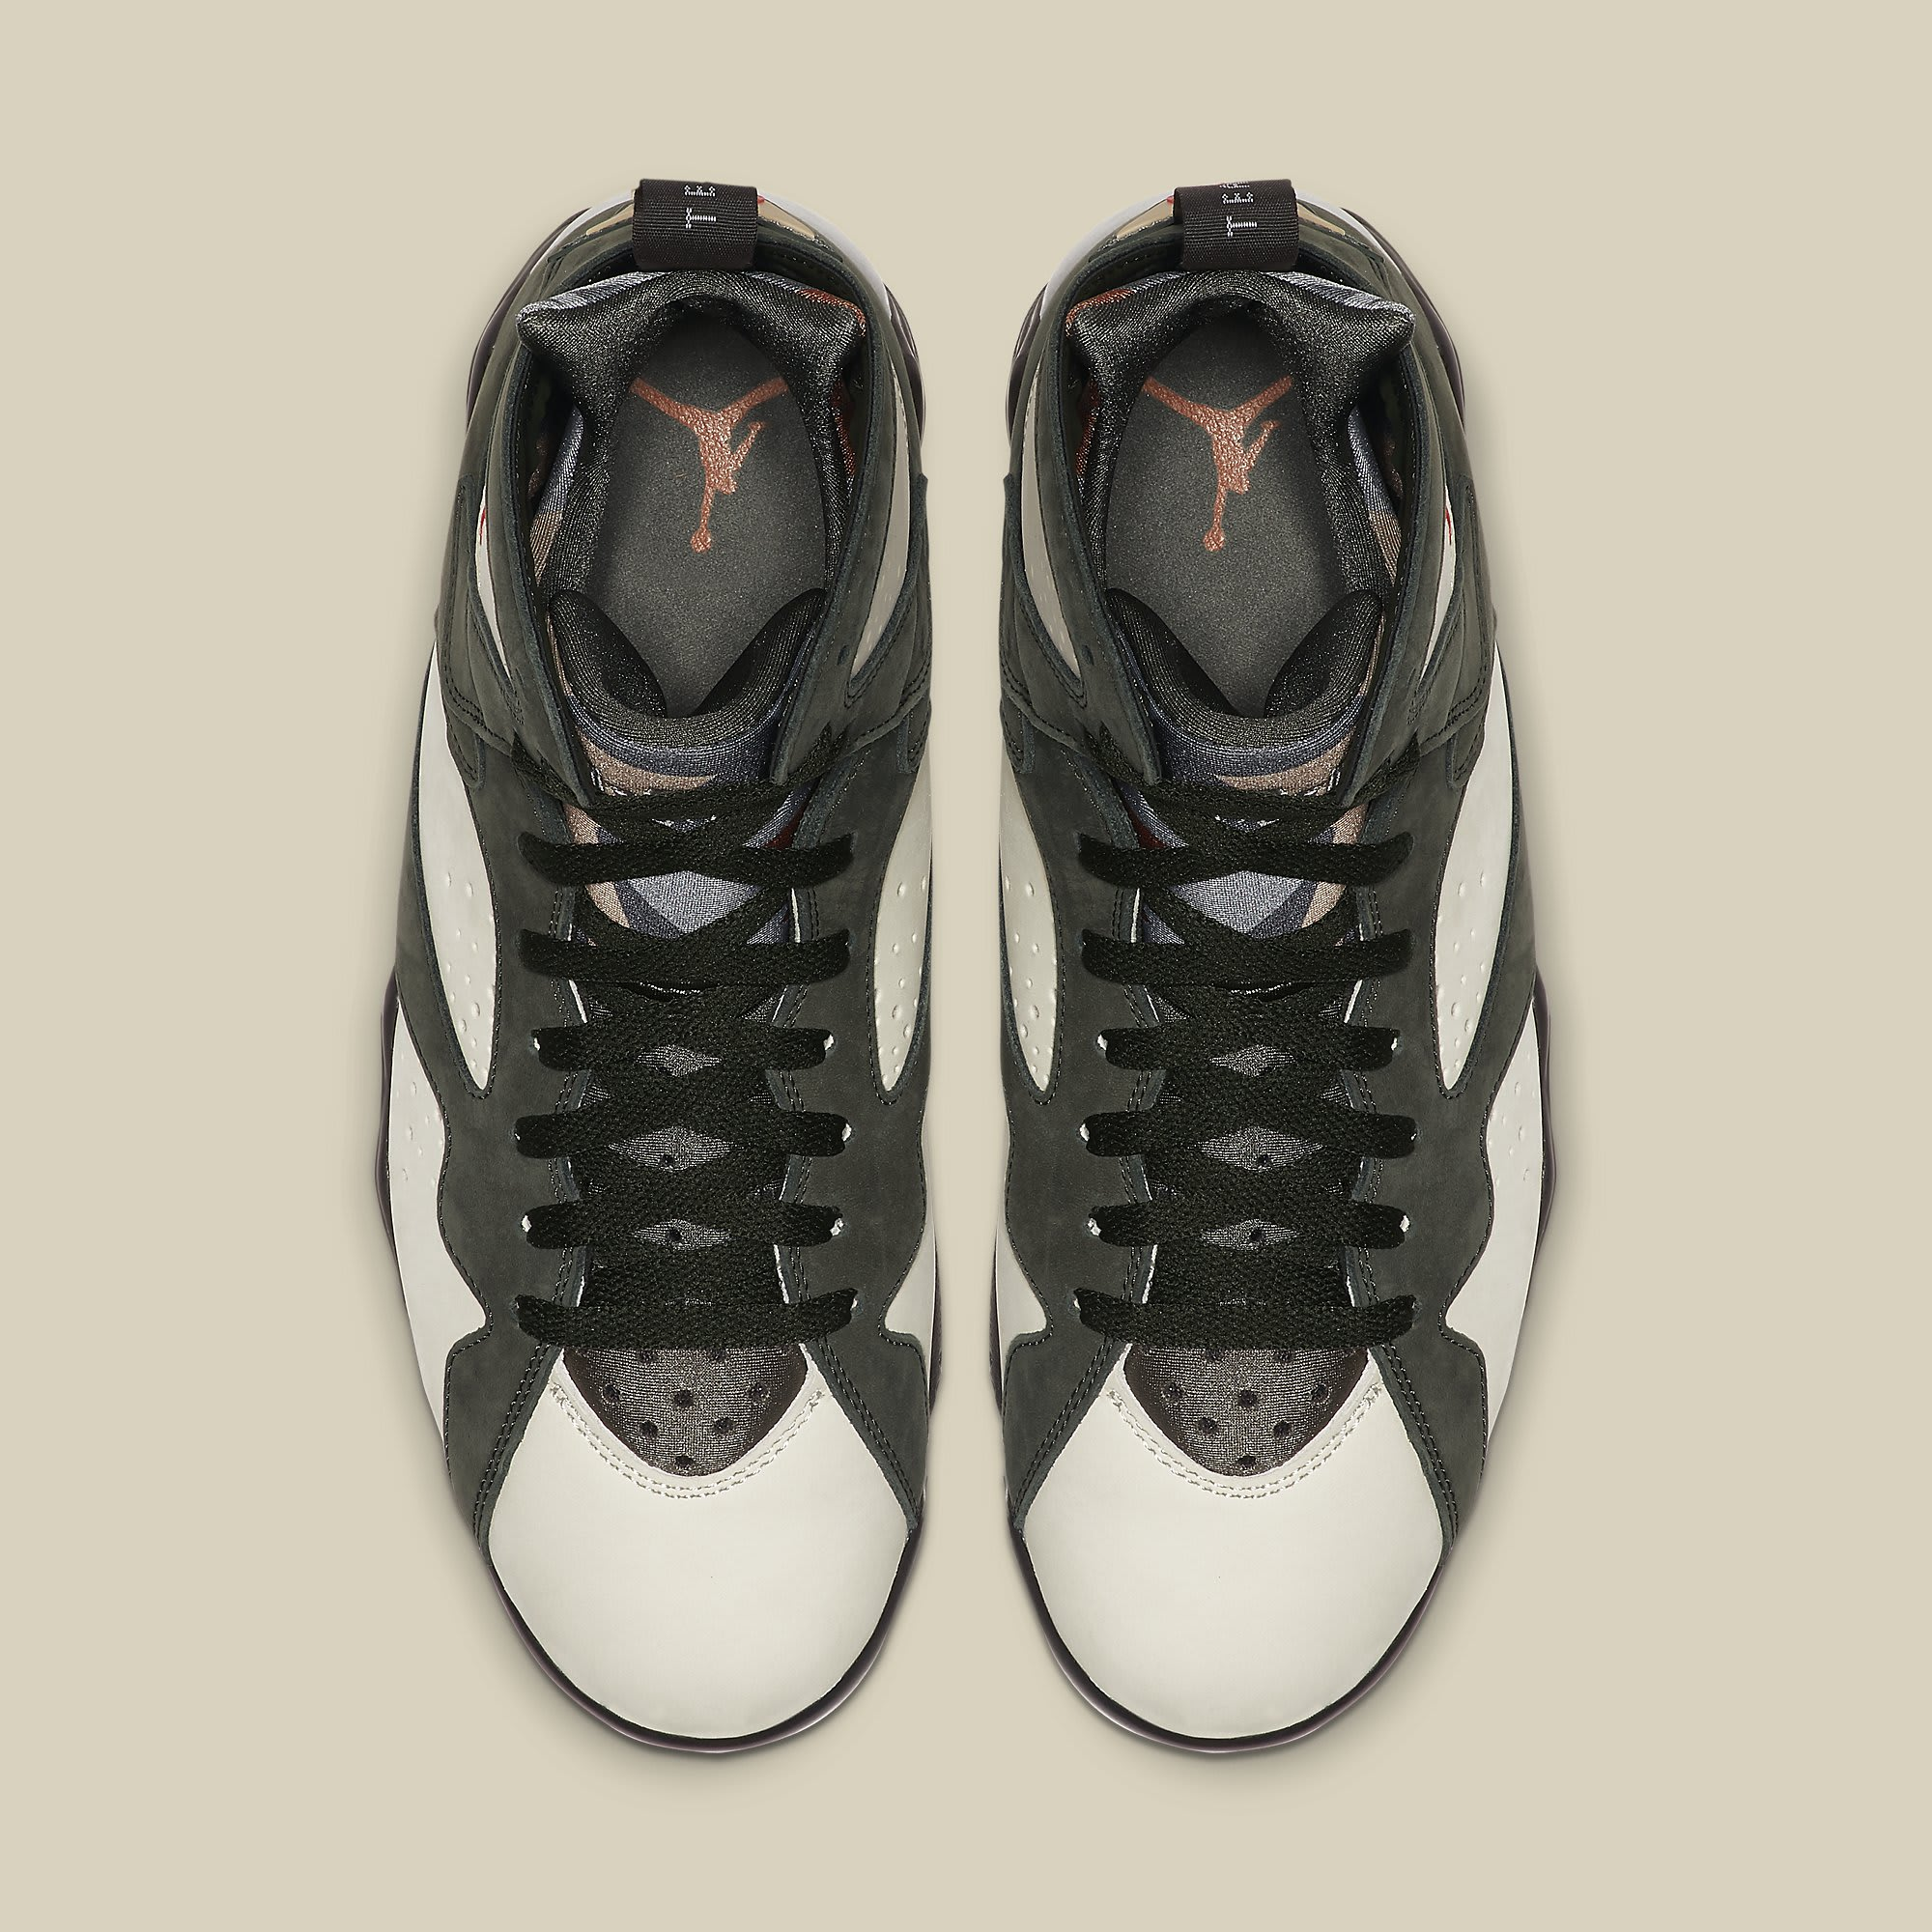 19e9cfb158467 Image via Nike Patta x Air Jordan 7 VII Icicle Release Date AT3375-100 Top